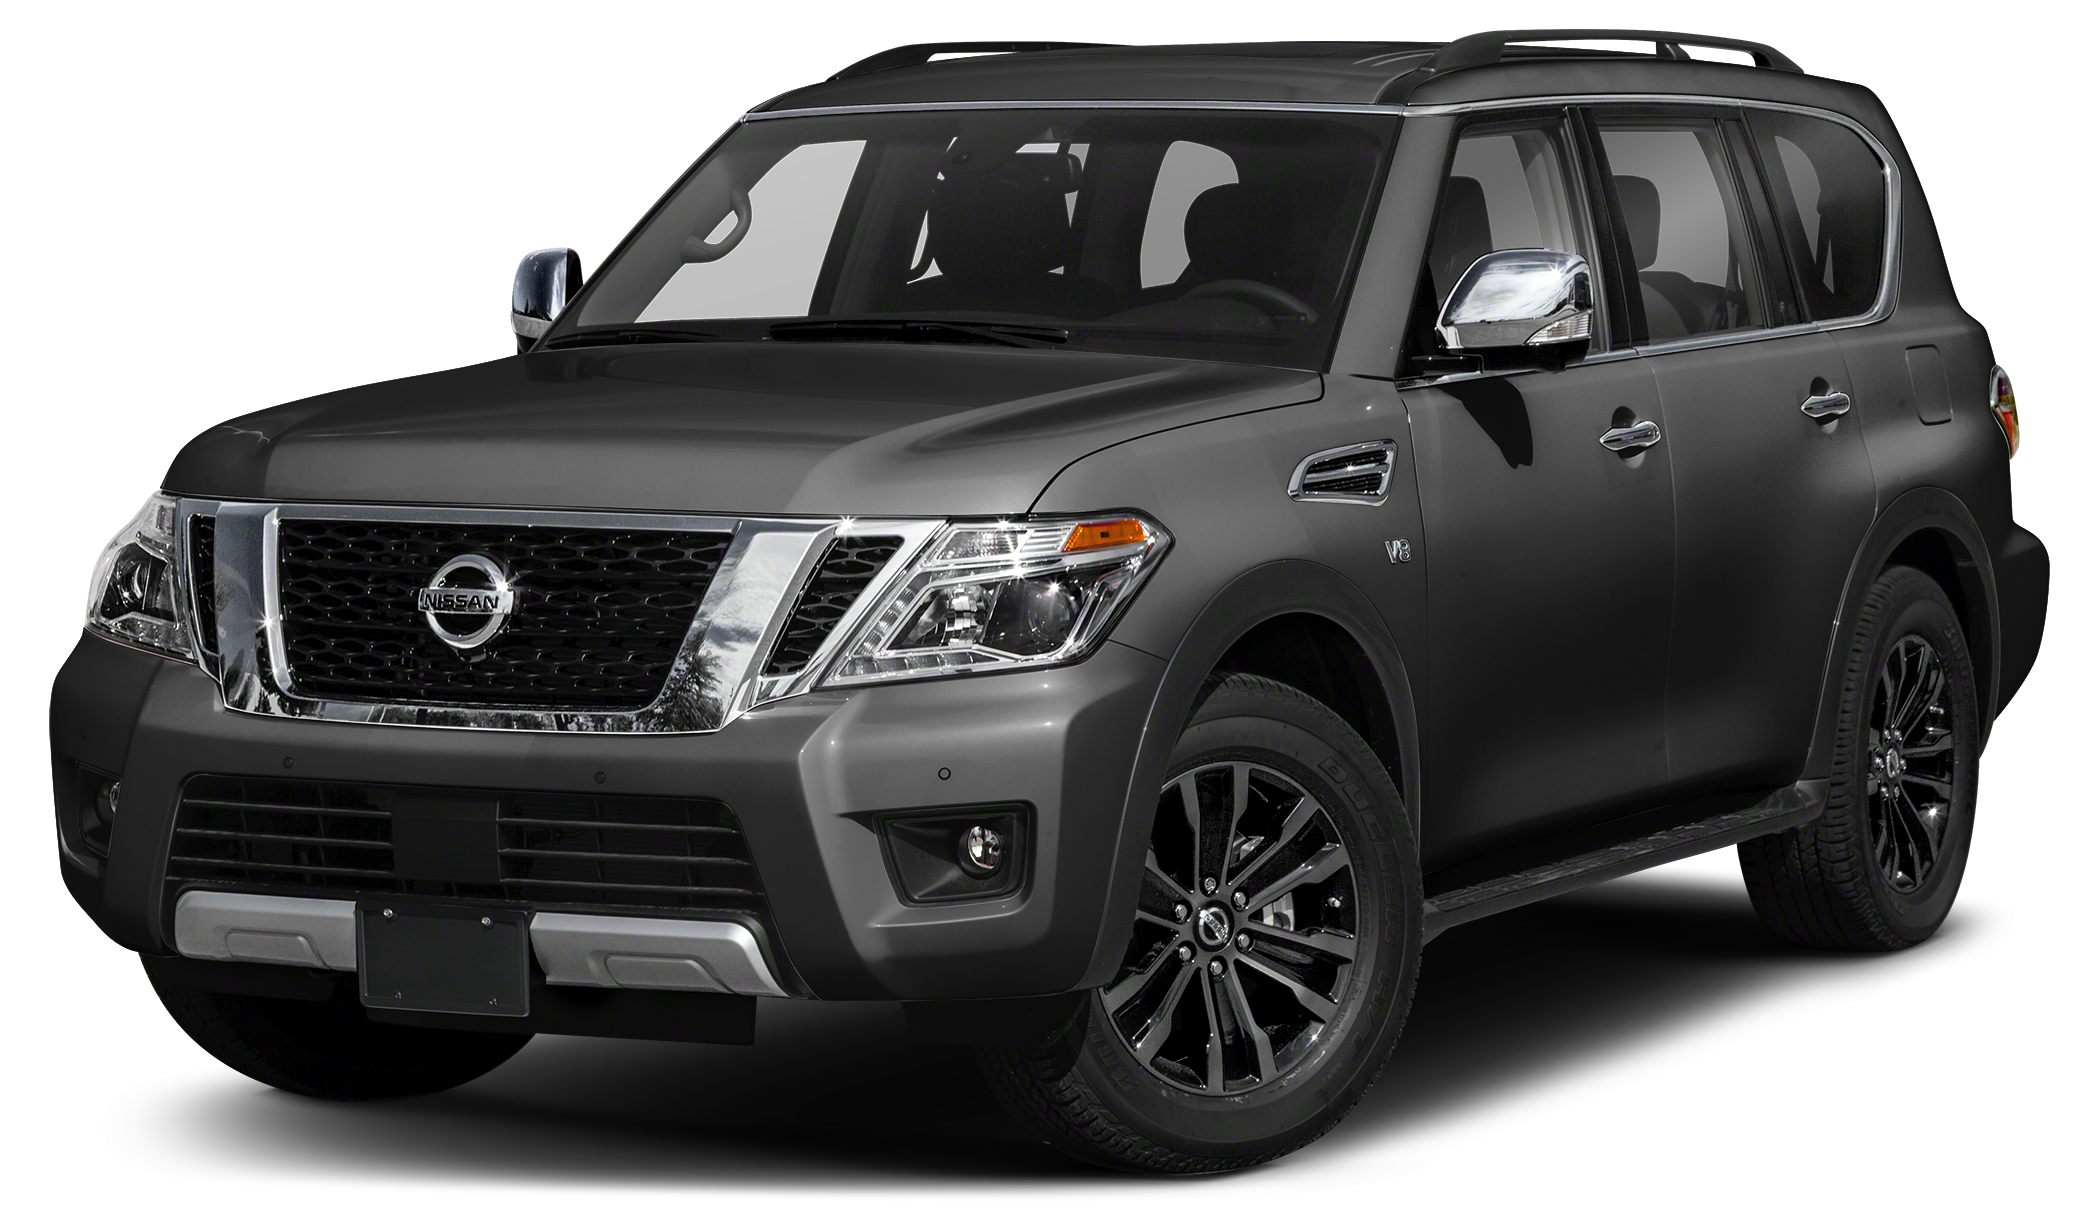 2017 Nissan Armada Platinum This 2017 Nissan Armada Platinum will sell fast This Armada has many